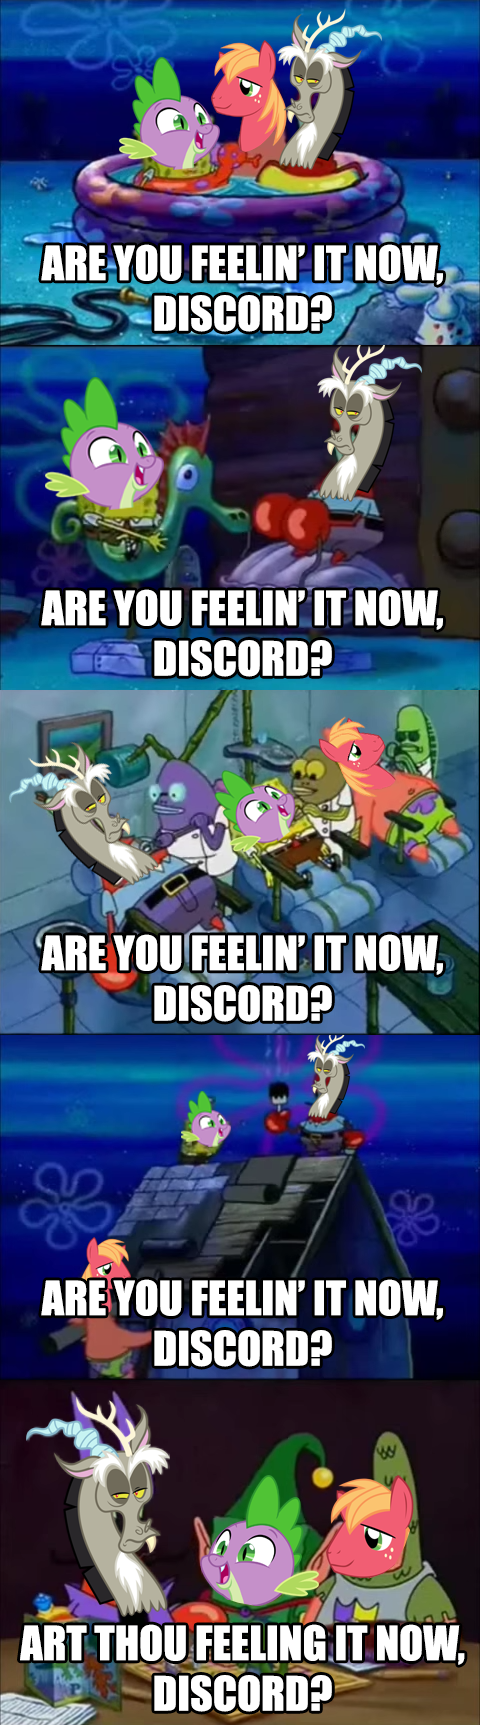 spike discord SpongeBob SquarePants Big Macintosh comic dungeons and discords - 8972222976